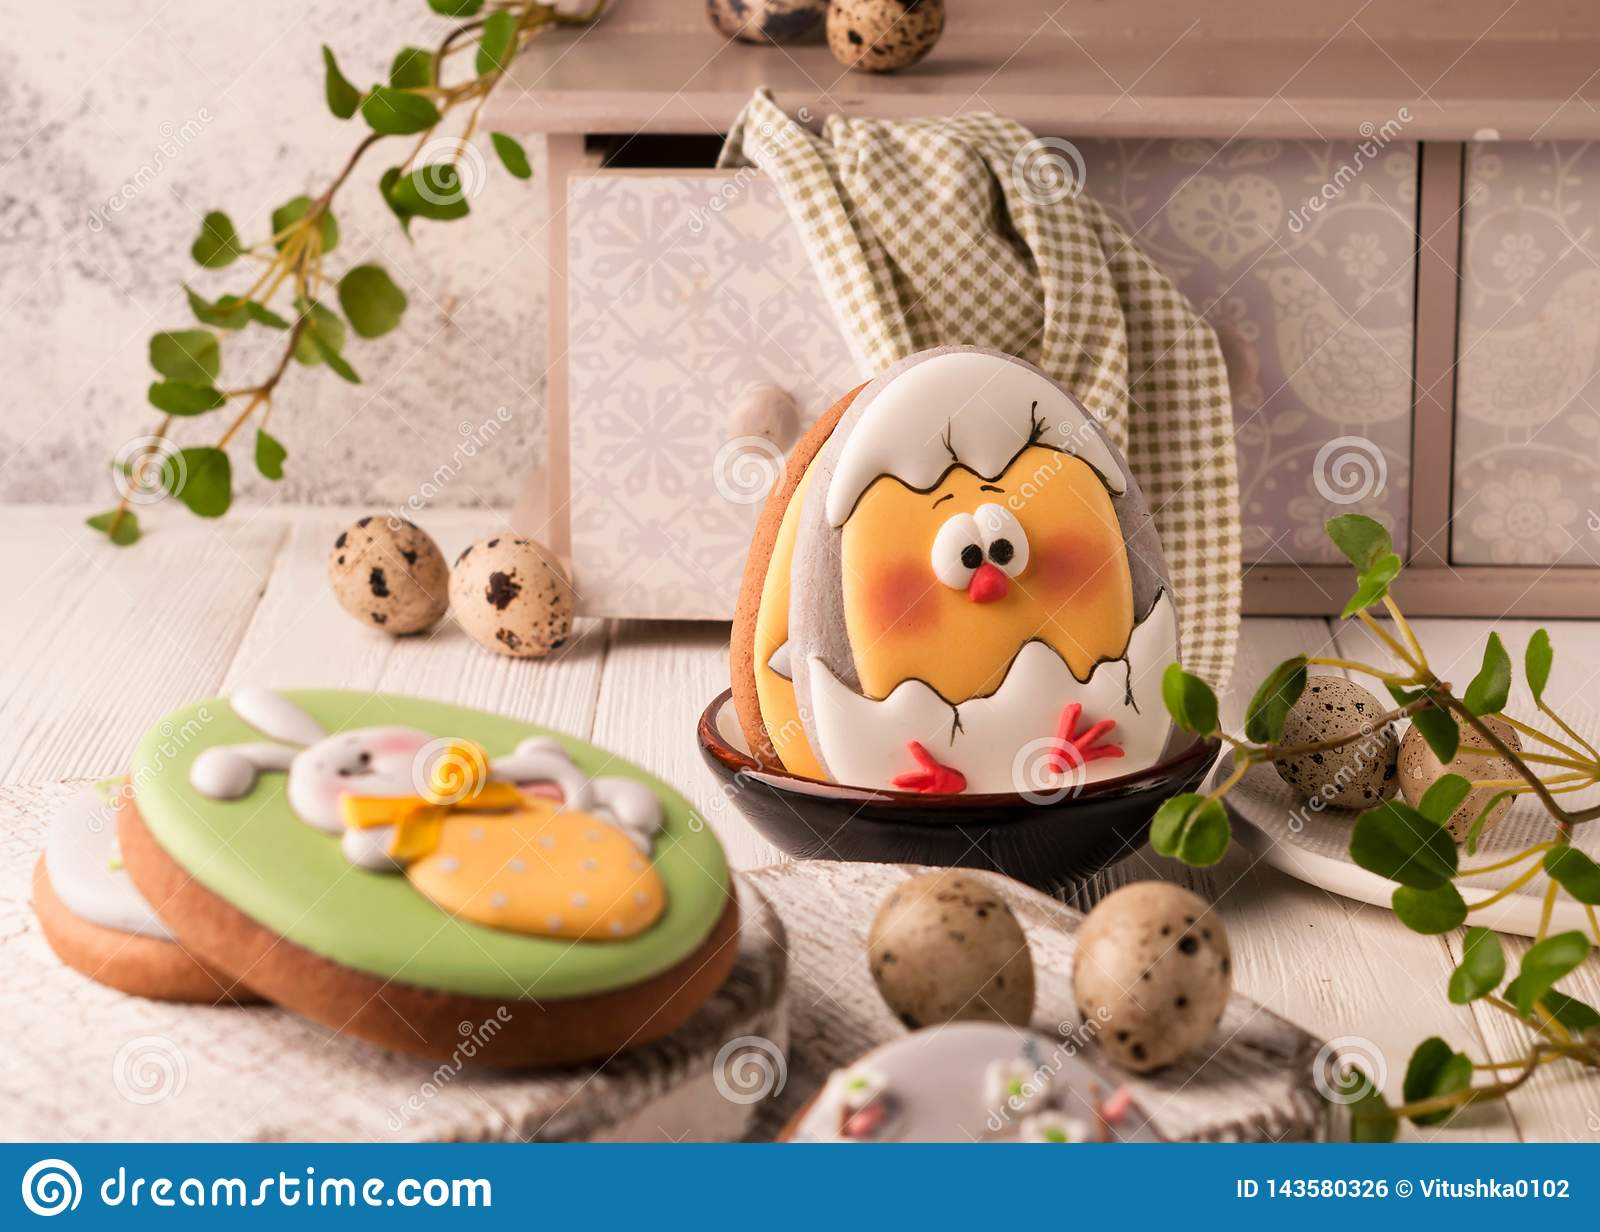 easter green cookies with painted easter bunny and hatched chicken in bowl near quail eggs, decorative sideboard and napkin